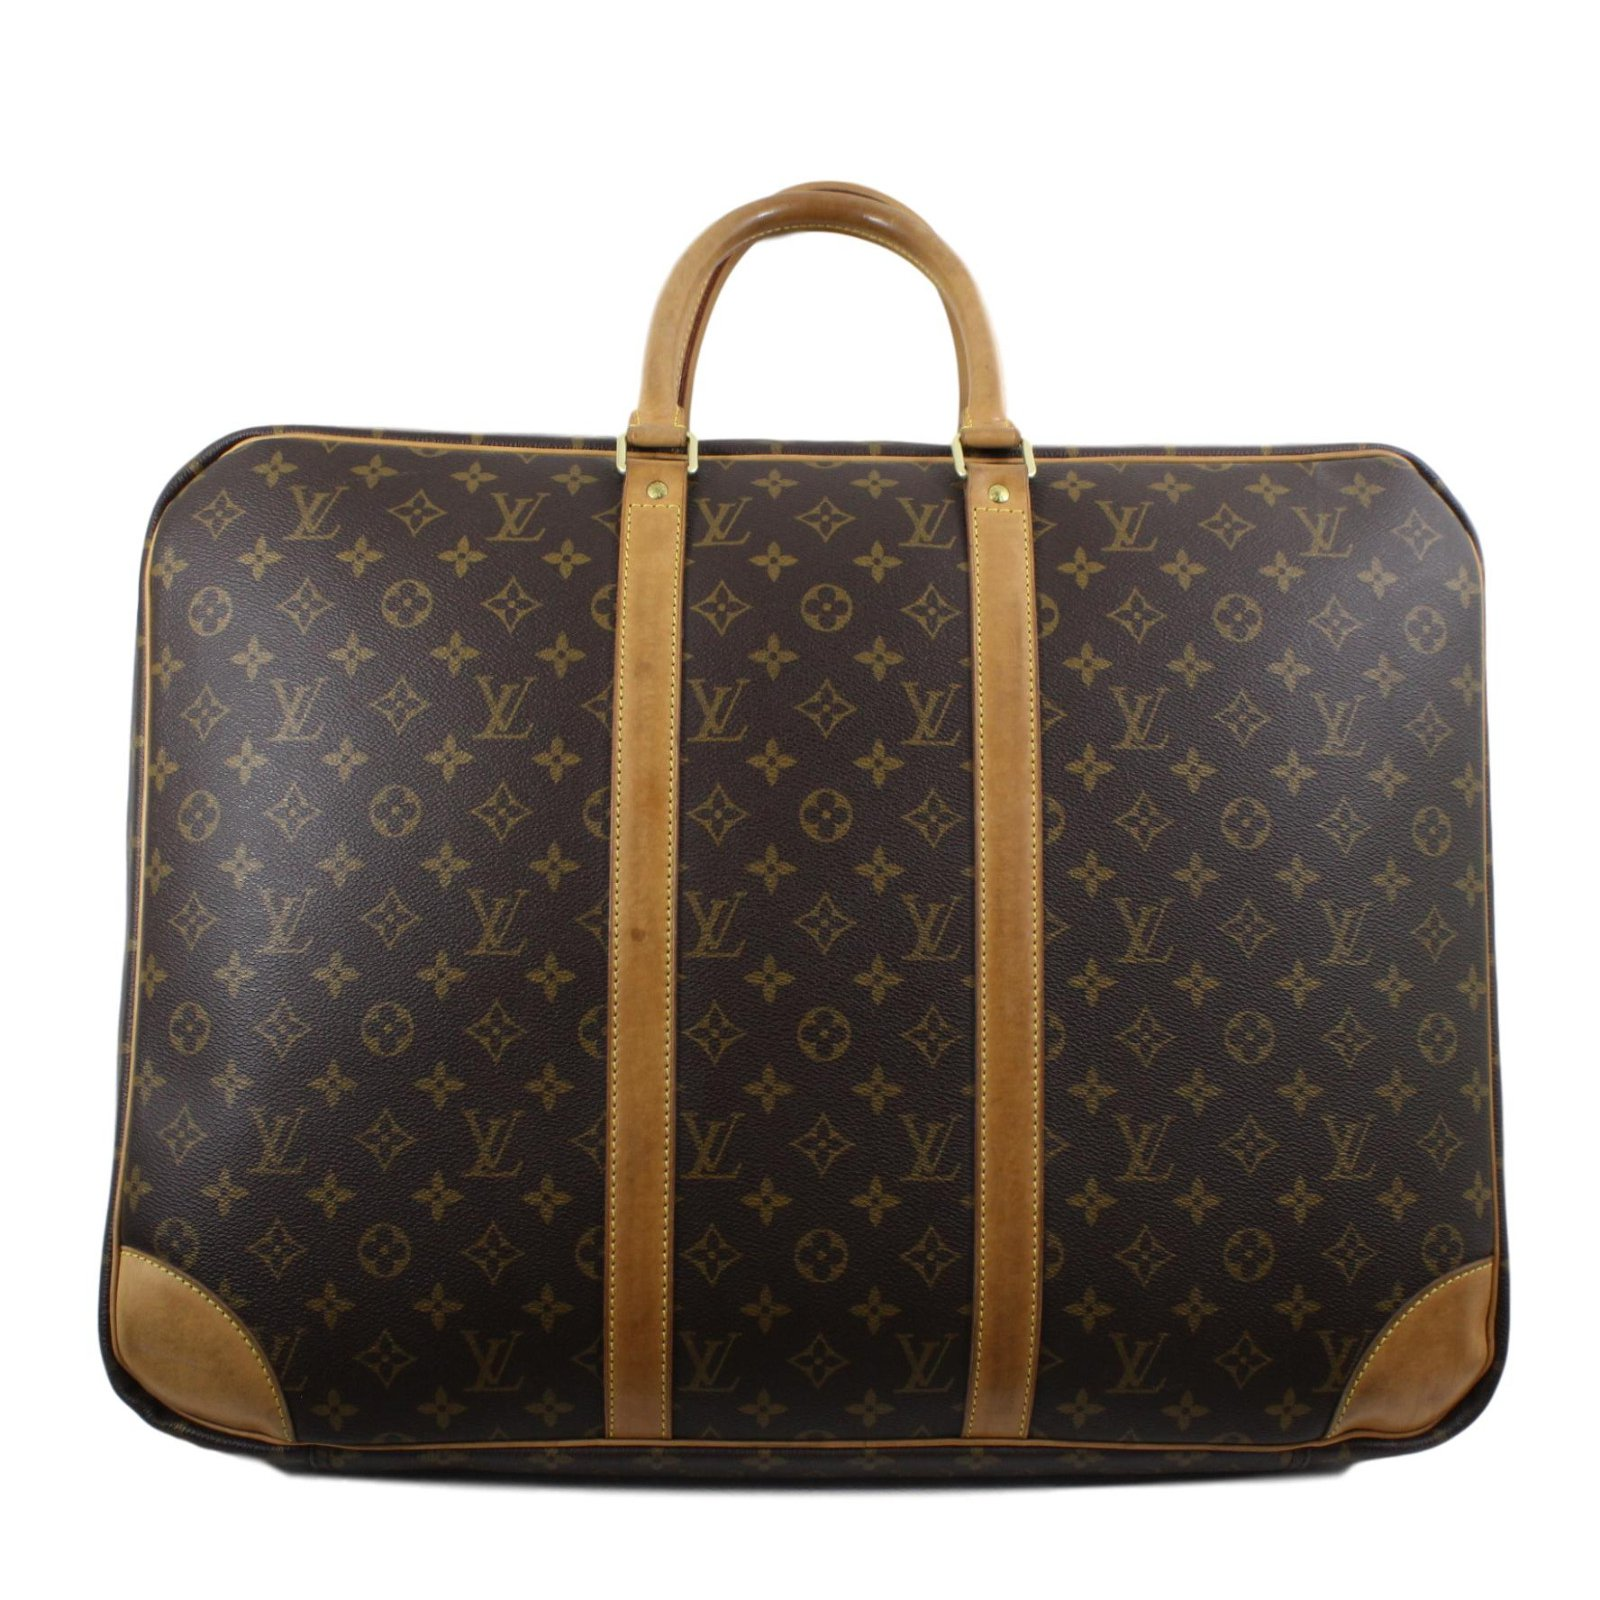 Louis Vuitton Travel Bag Leather Brown Ref 47395